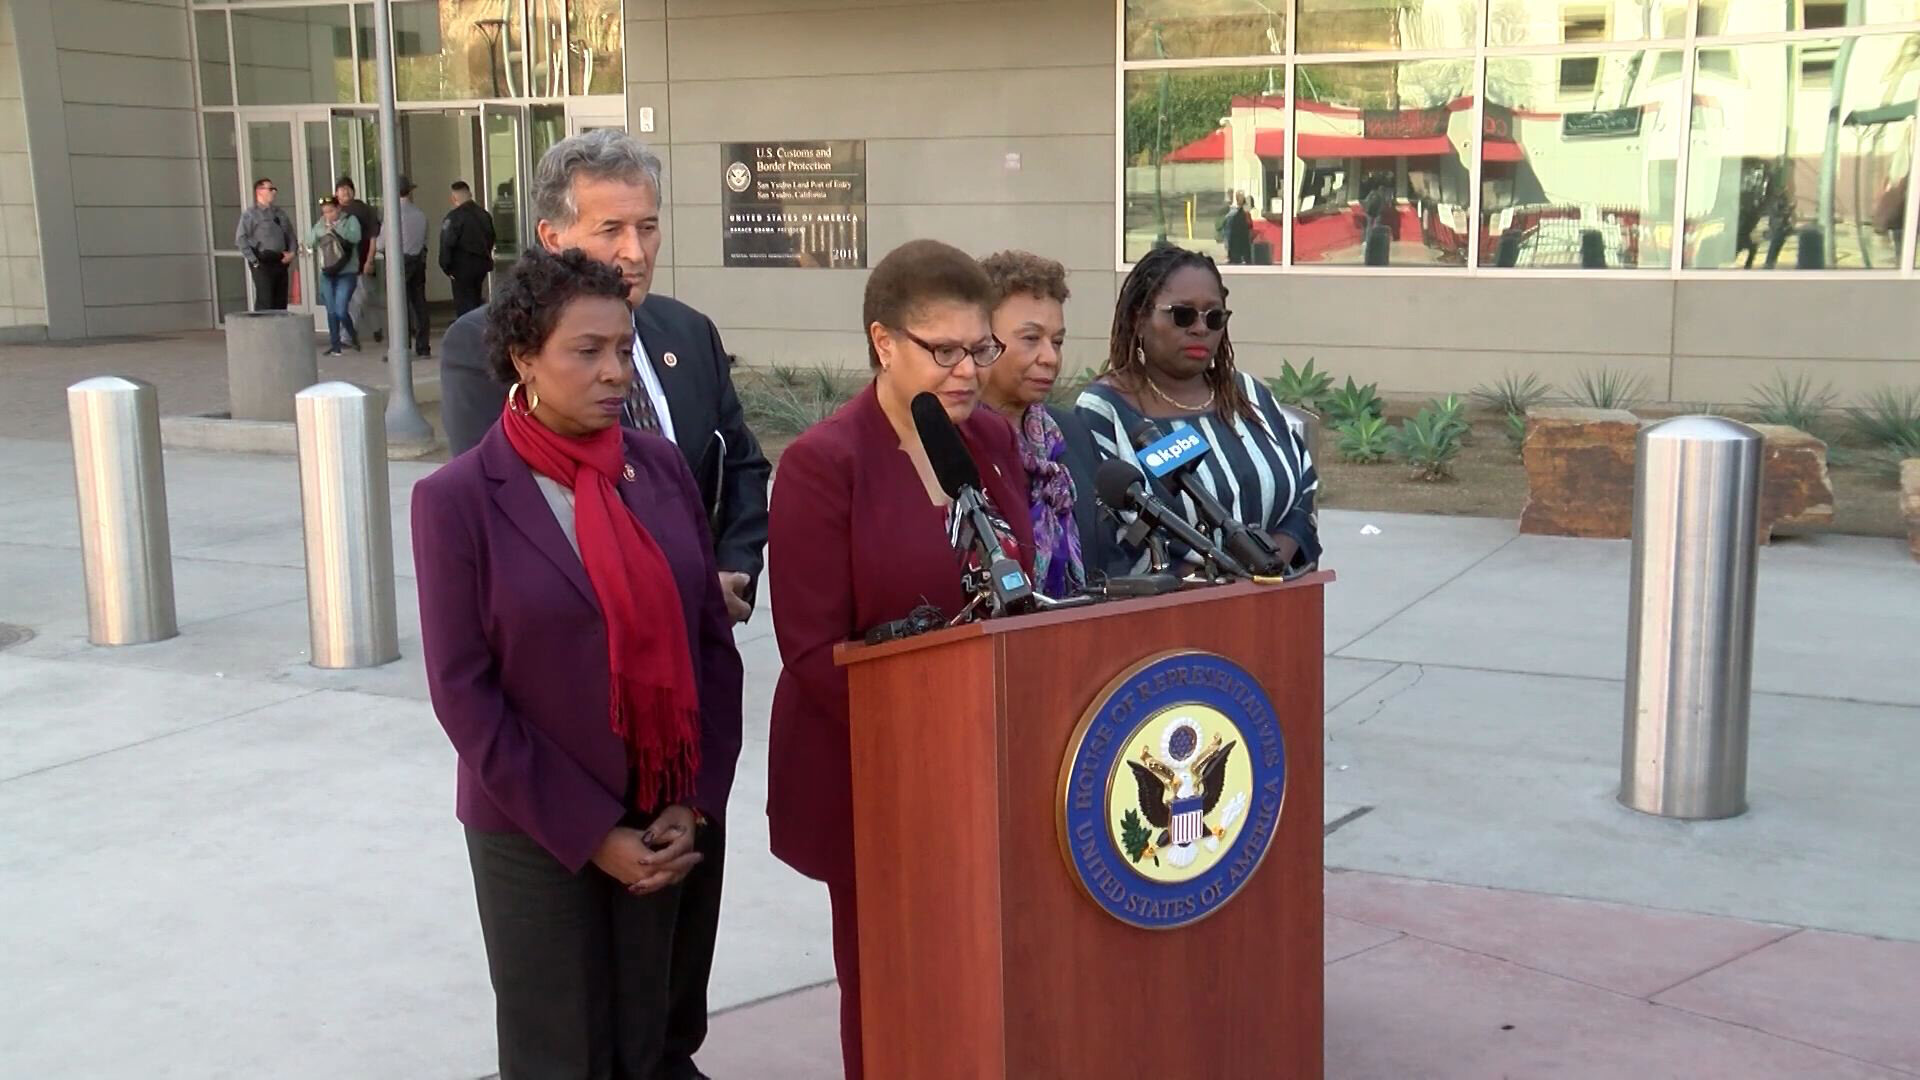 Members of the Congressional Black Caucus, Rep. Karen Bass (D-CA) (center), Rep. Barbara Lee (D-CA) (fourth from left), and Congresswoman Yvette Clarke (D-NY) (far left), along with local Congressman, Rep. Juan Vargas (second from left), visited a shelter for African asylum-seekers in Tijuana November 22, 2019. Attorney Nana Gyamfi, the executive director of the Black Alliance for Just Immigration (far right), joined the group at the border. (Photo: Screen capture KPBS / YouTube)